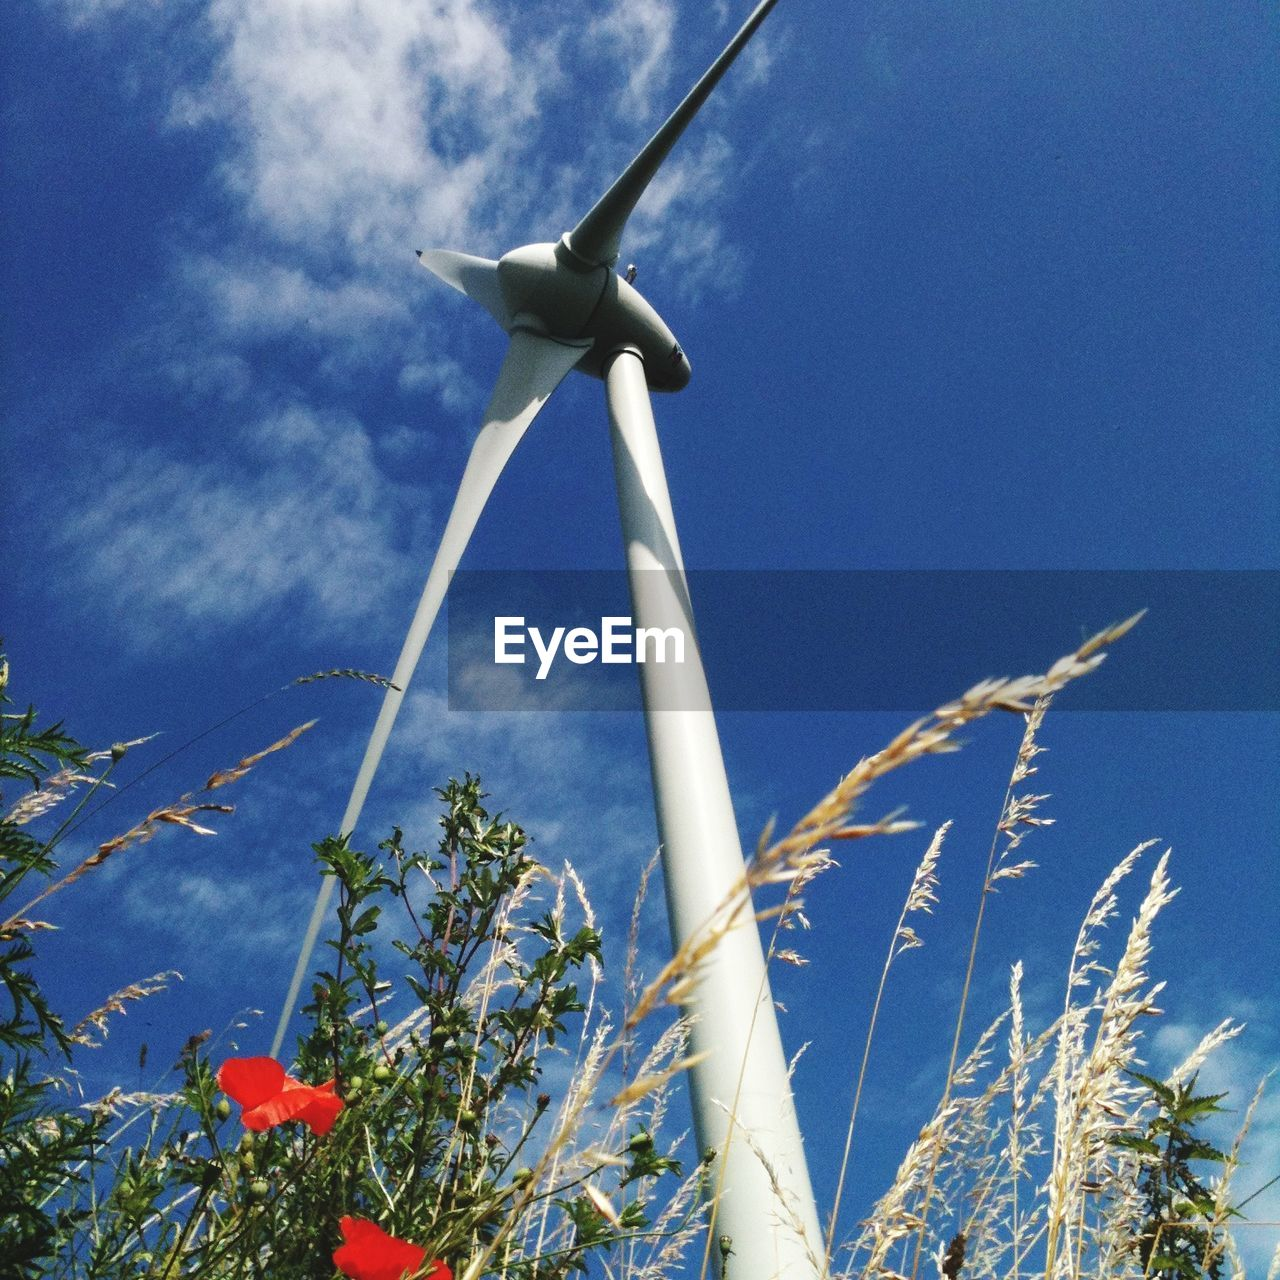 renewable energy, wind turbine, alternative energy, wind power, turbine, environmental conservation, plant, low angle view, fuel and power generation, sky, environment, nature, day, blue, growth, no people, beauty in nature, outdoors, sunlight, technology